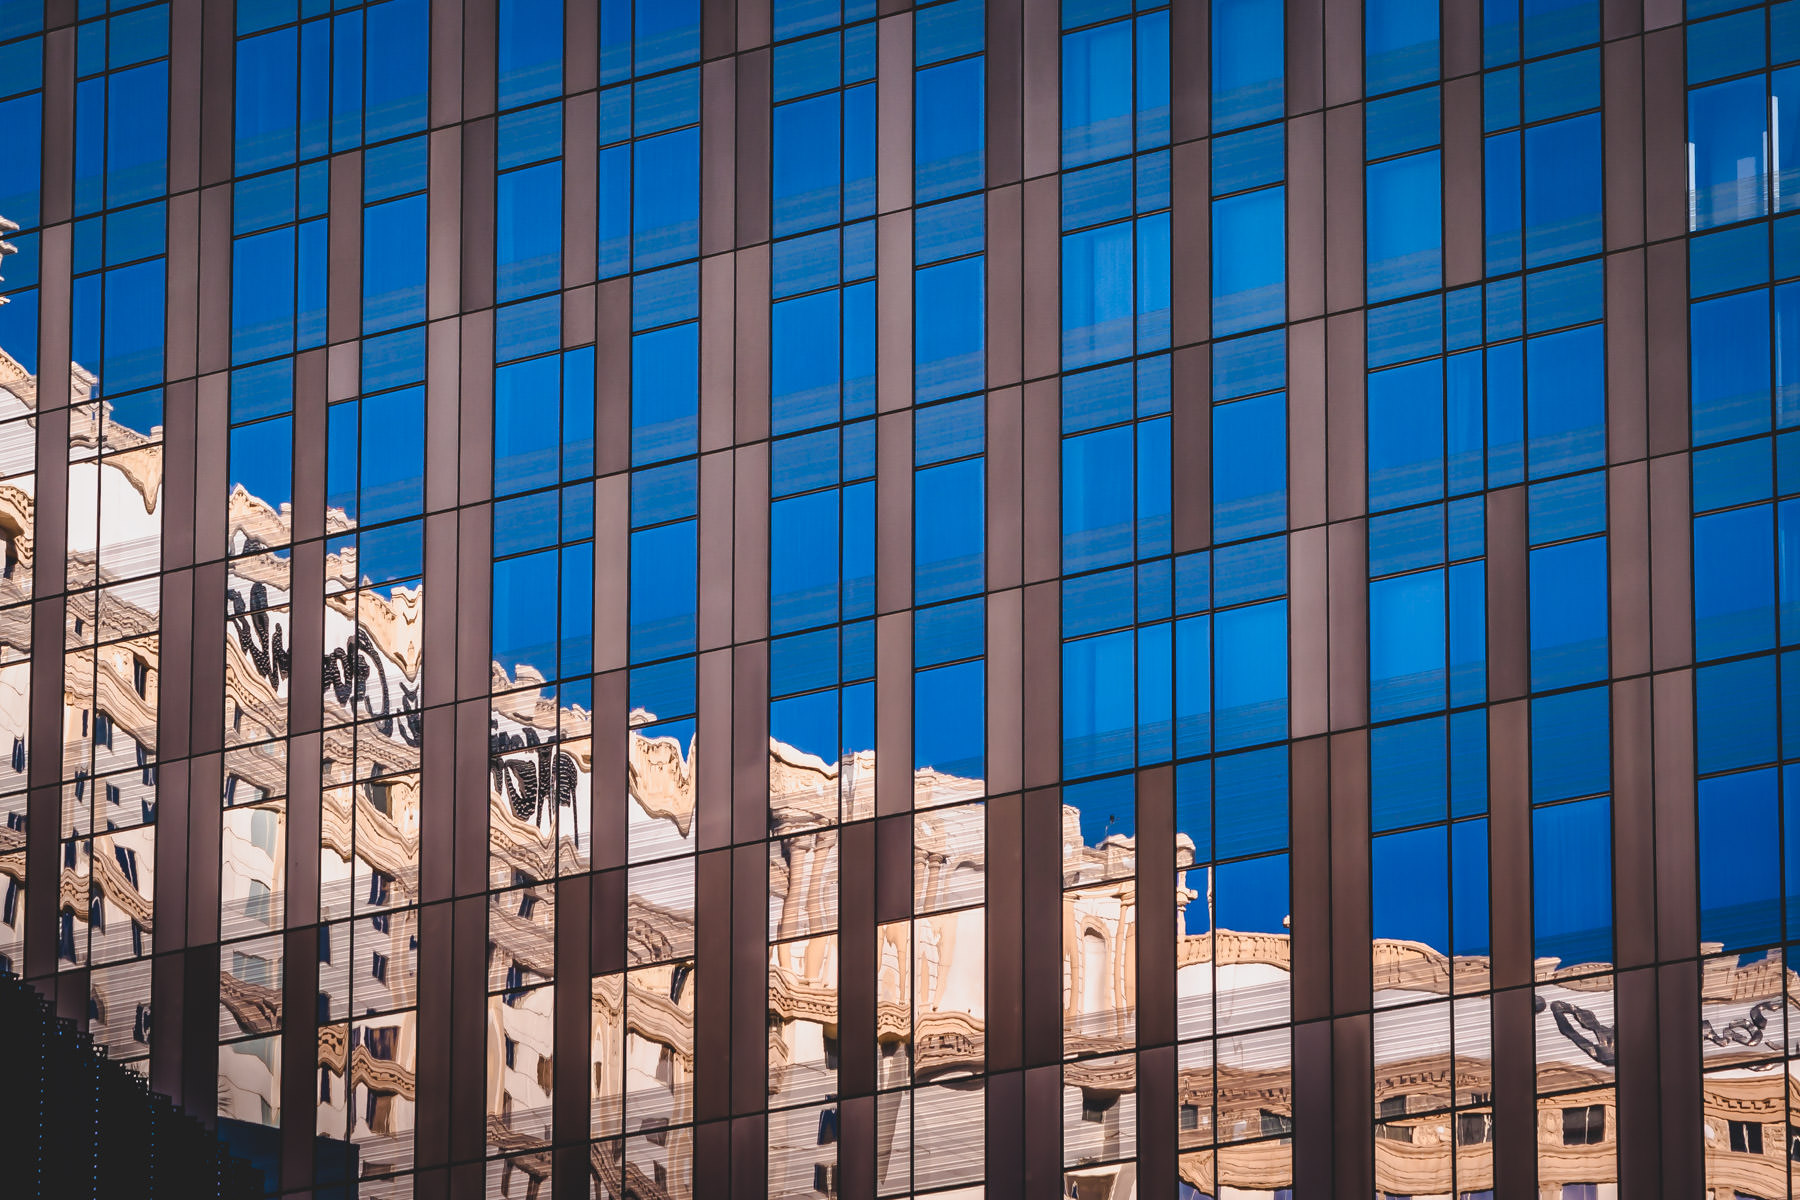 Las Vegas' Monte Carlo Hotel and Casino, abstracted by reflection in the adjacent Mandarin Oriental Hotel.